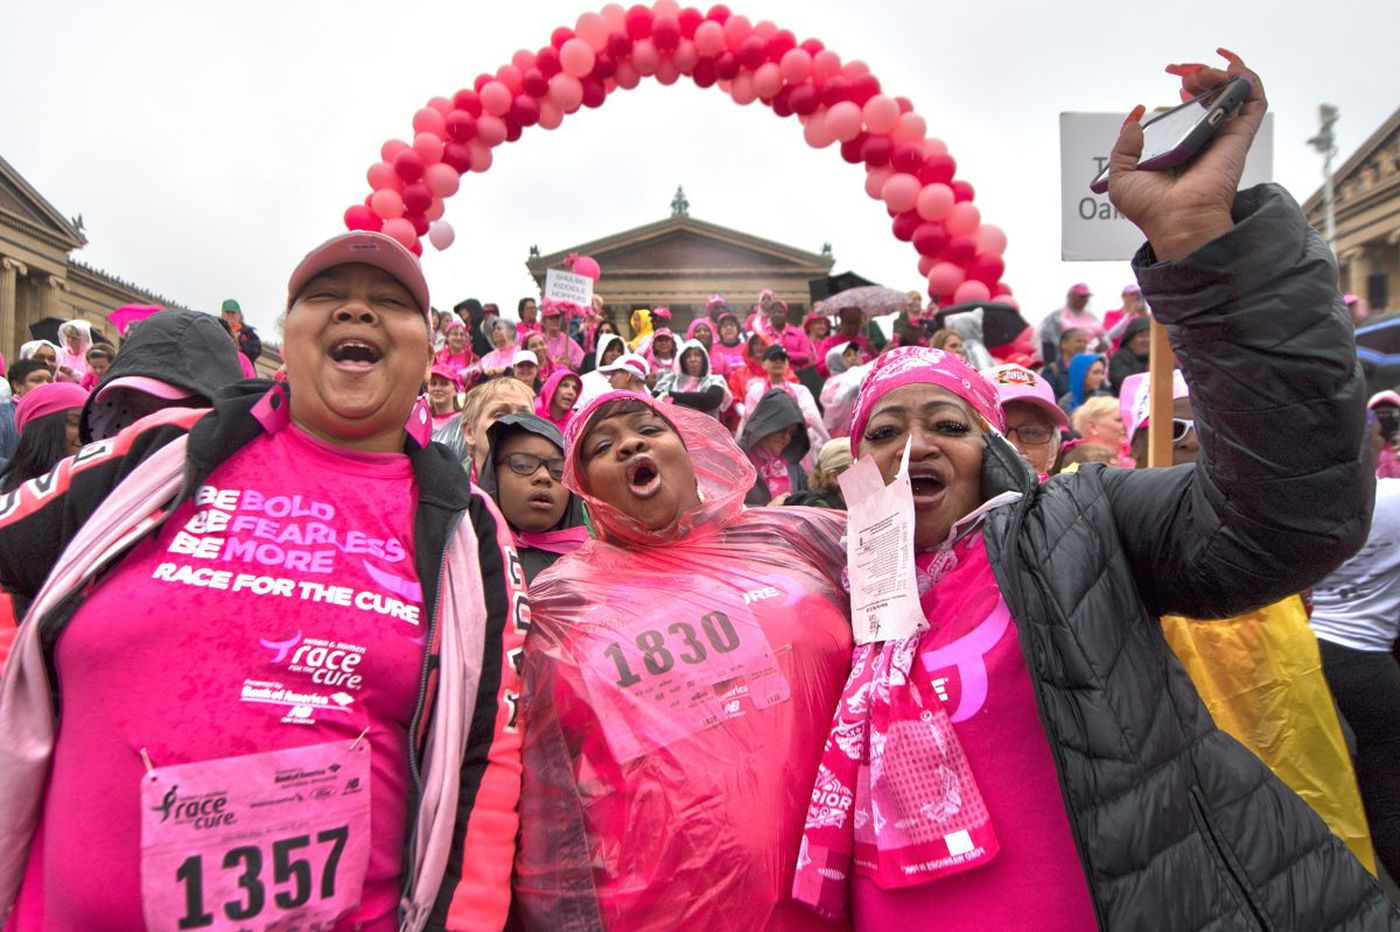 Thousands run 2018 Susan G. Komen Race for the Cure